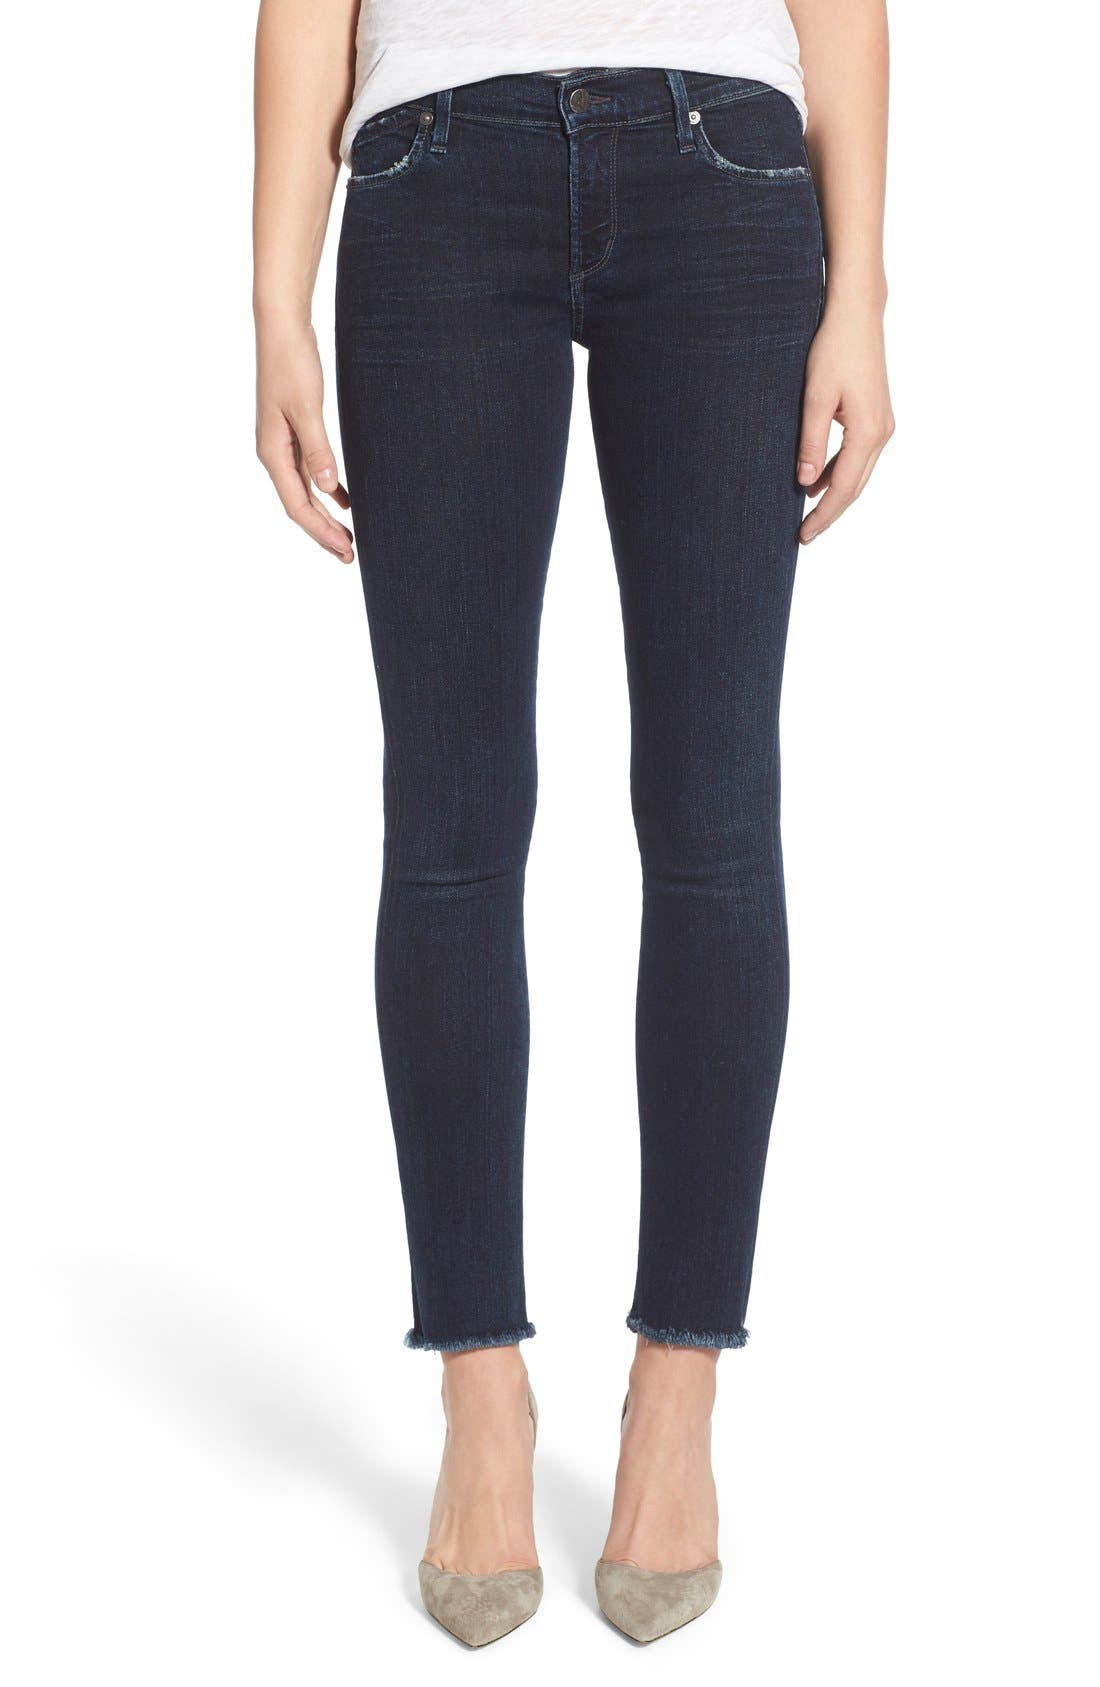 CITIZENS OF HUMANITY Cutoff Ankle Skinny Jeans, Main, color, 408